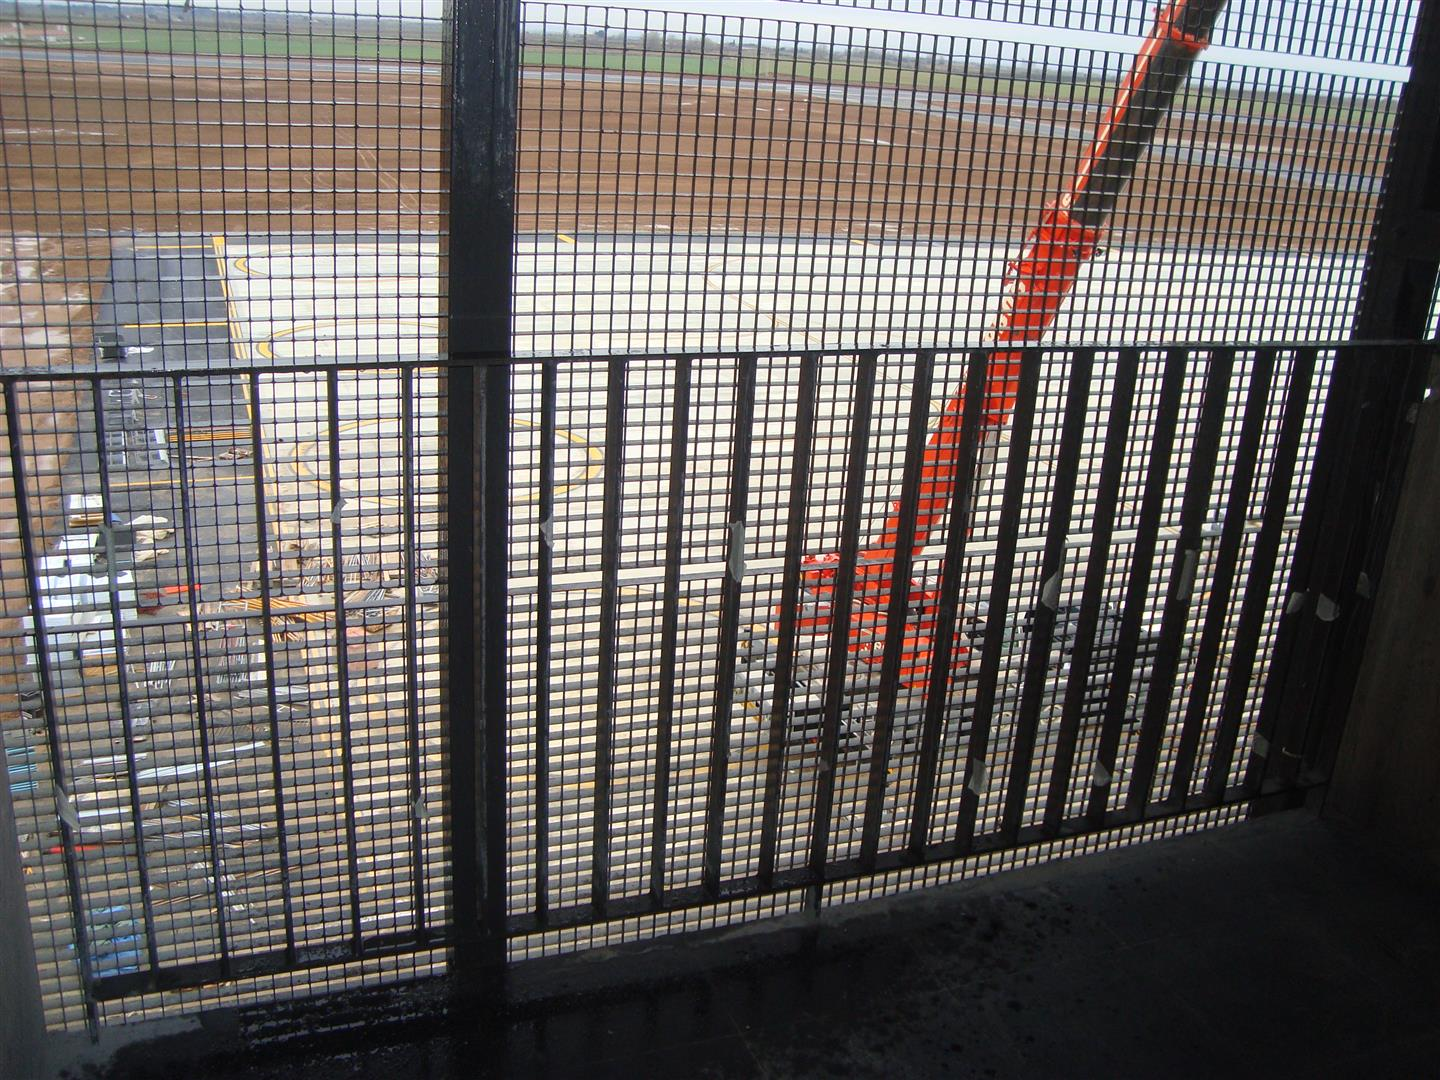 FOTOS AEROPORT 006